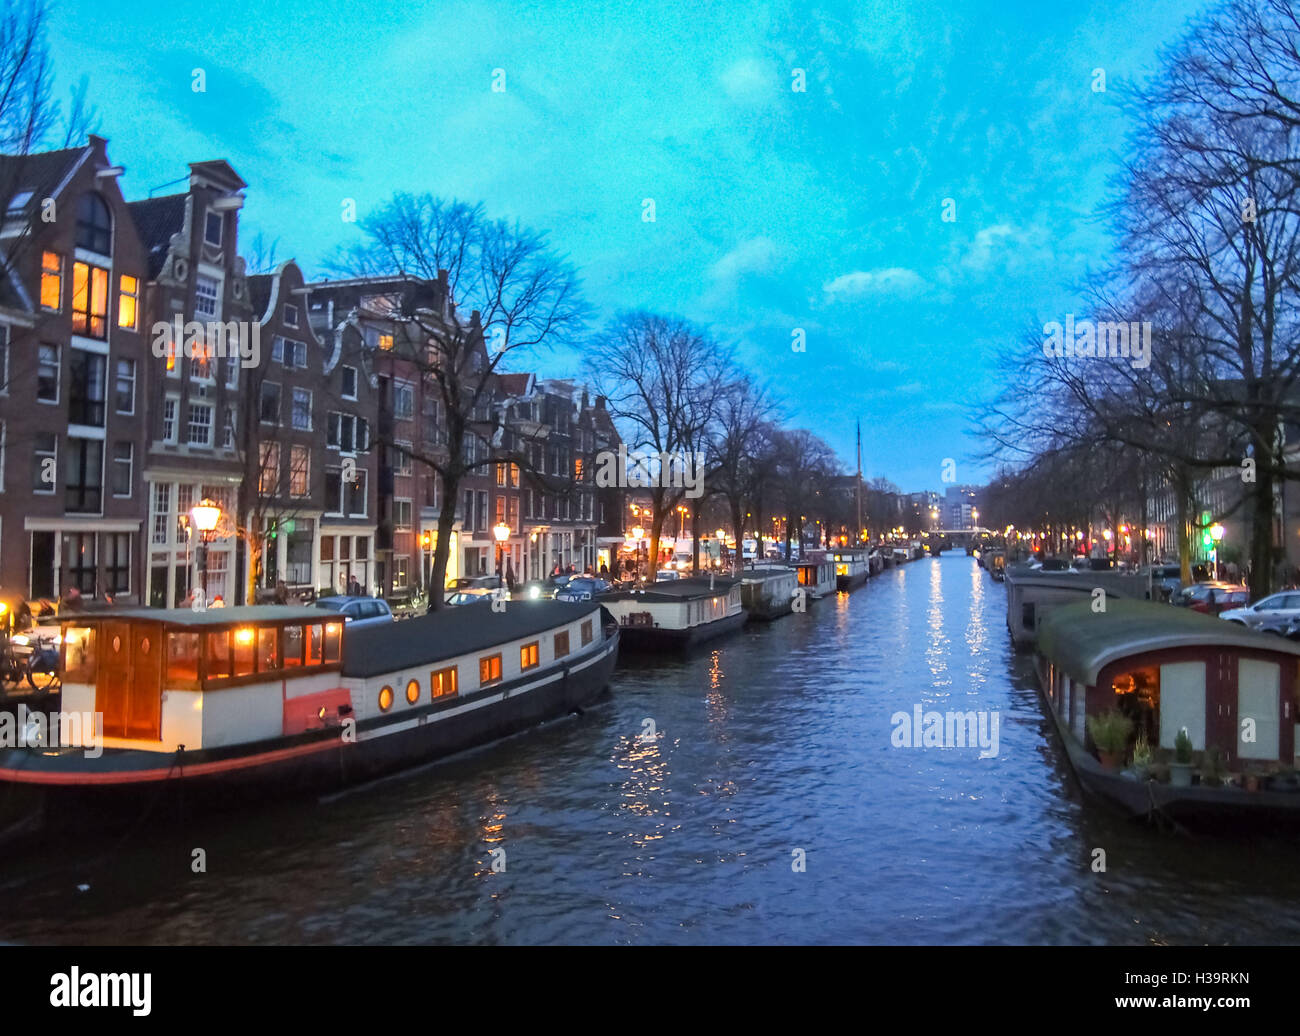 View of a canal in Amsterdam at twilight during winter - Stock Image